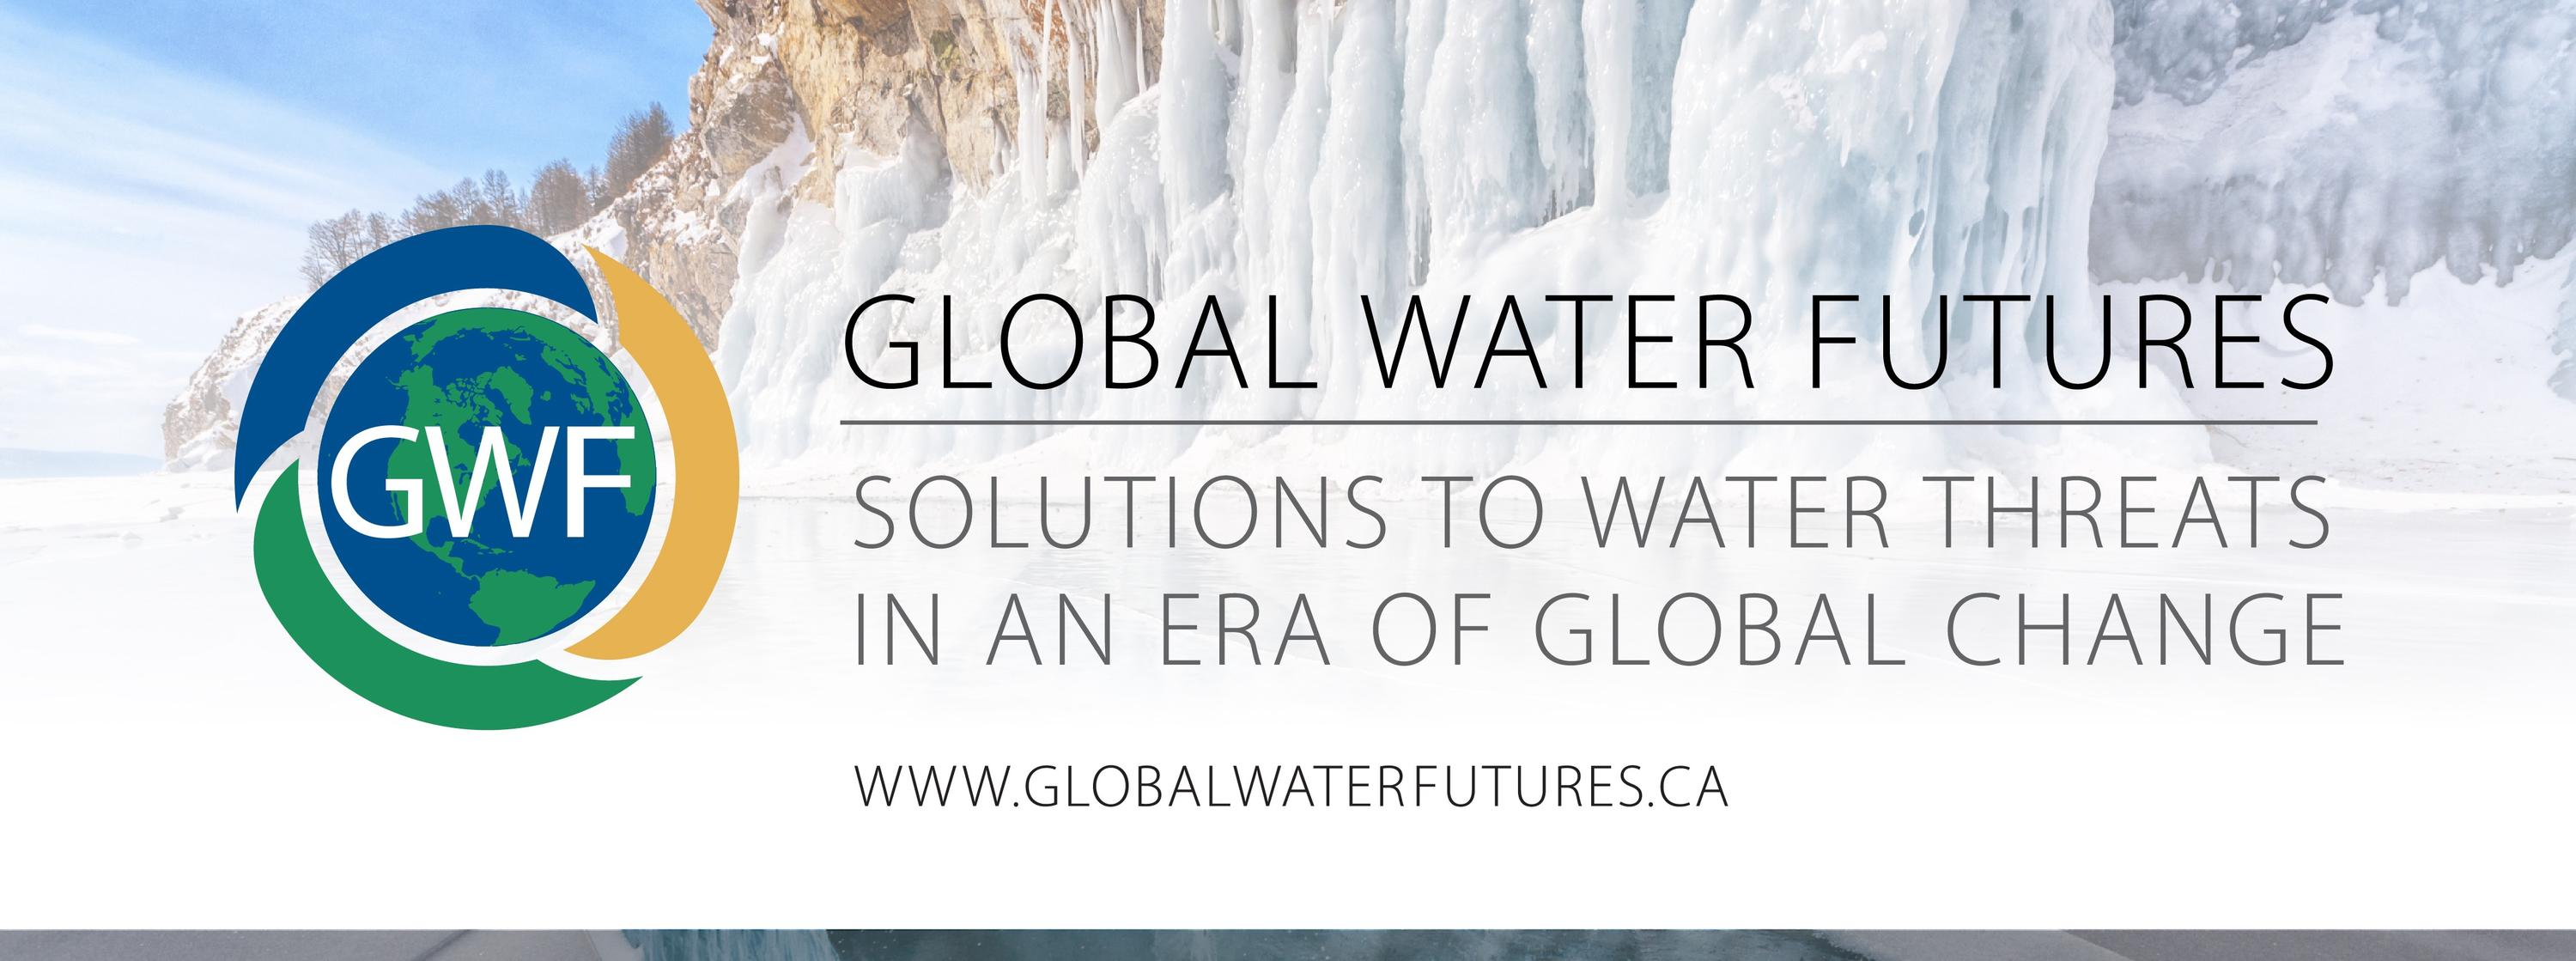 Global Water Futures